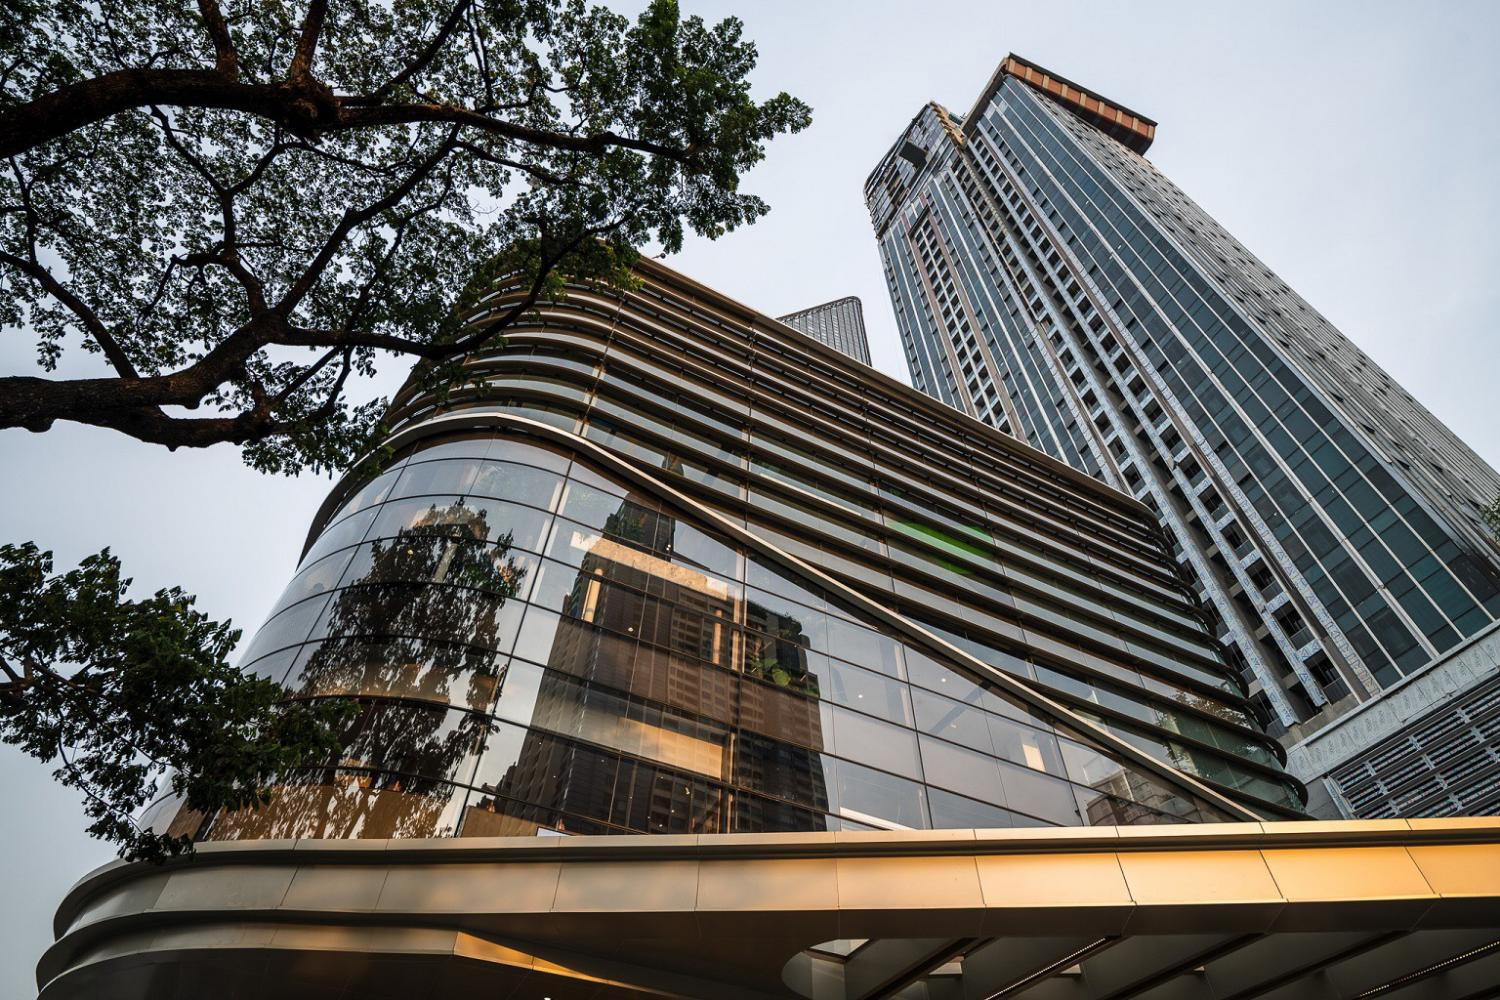 Singha Estate's commercial property businesses include 140,000 square metres of commercial office and retail space contributing 15% of total revenue in 2020.